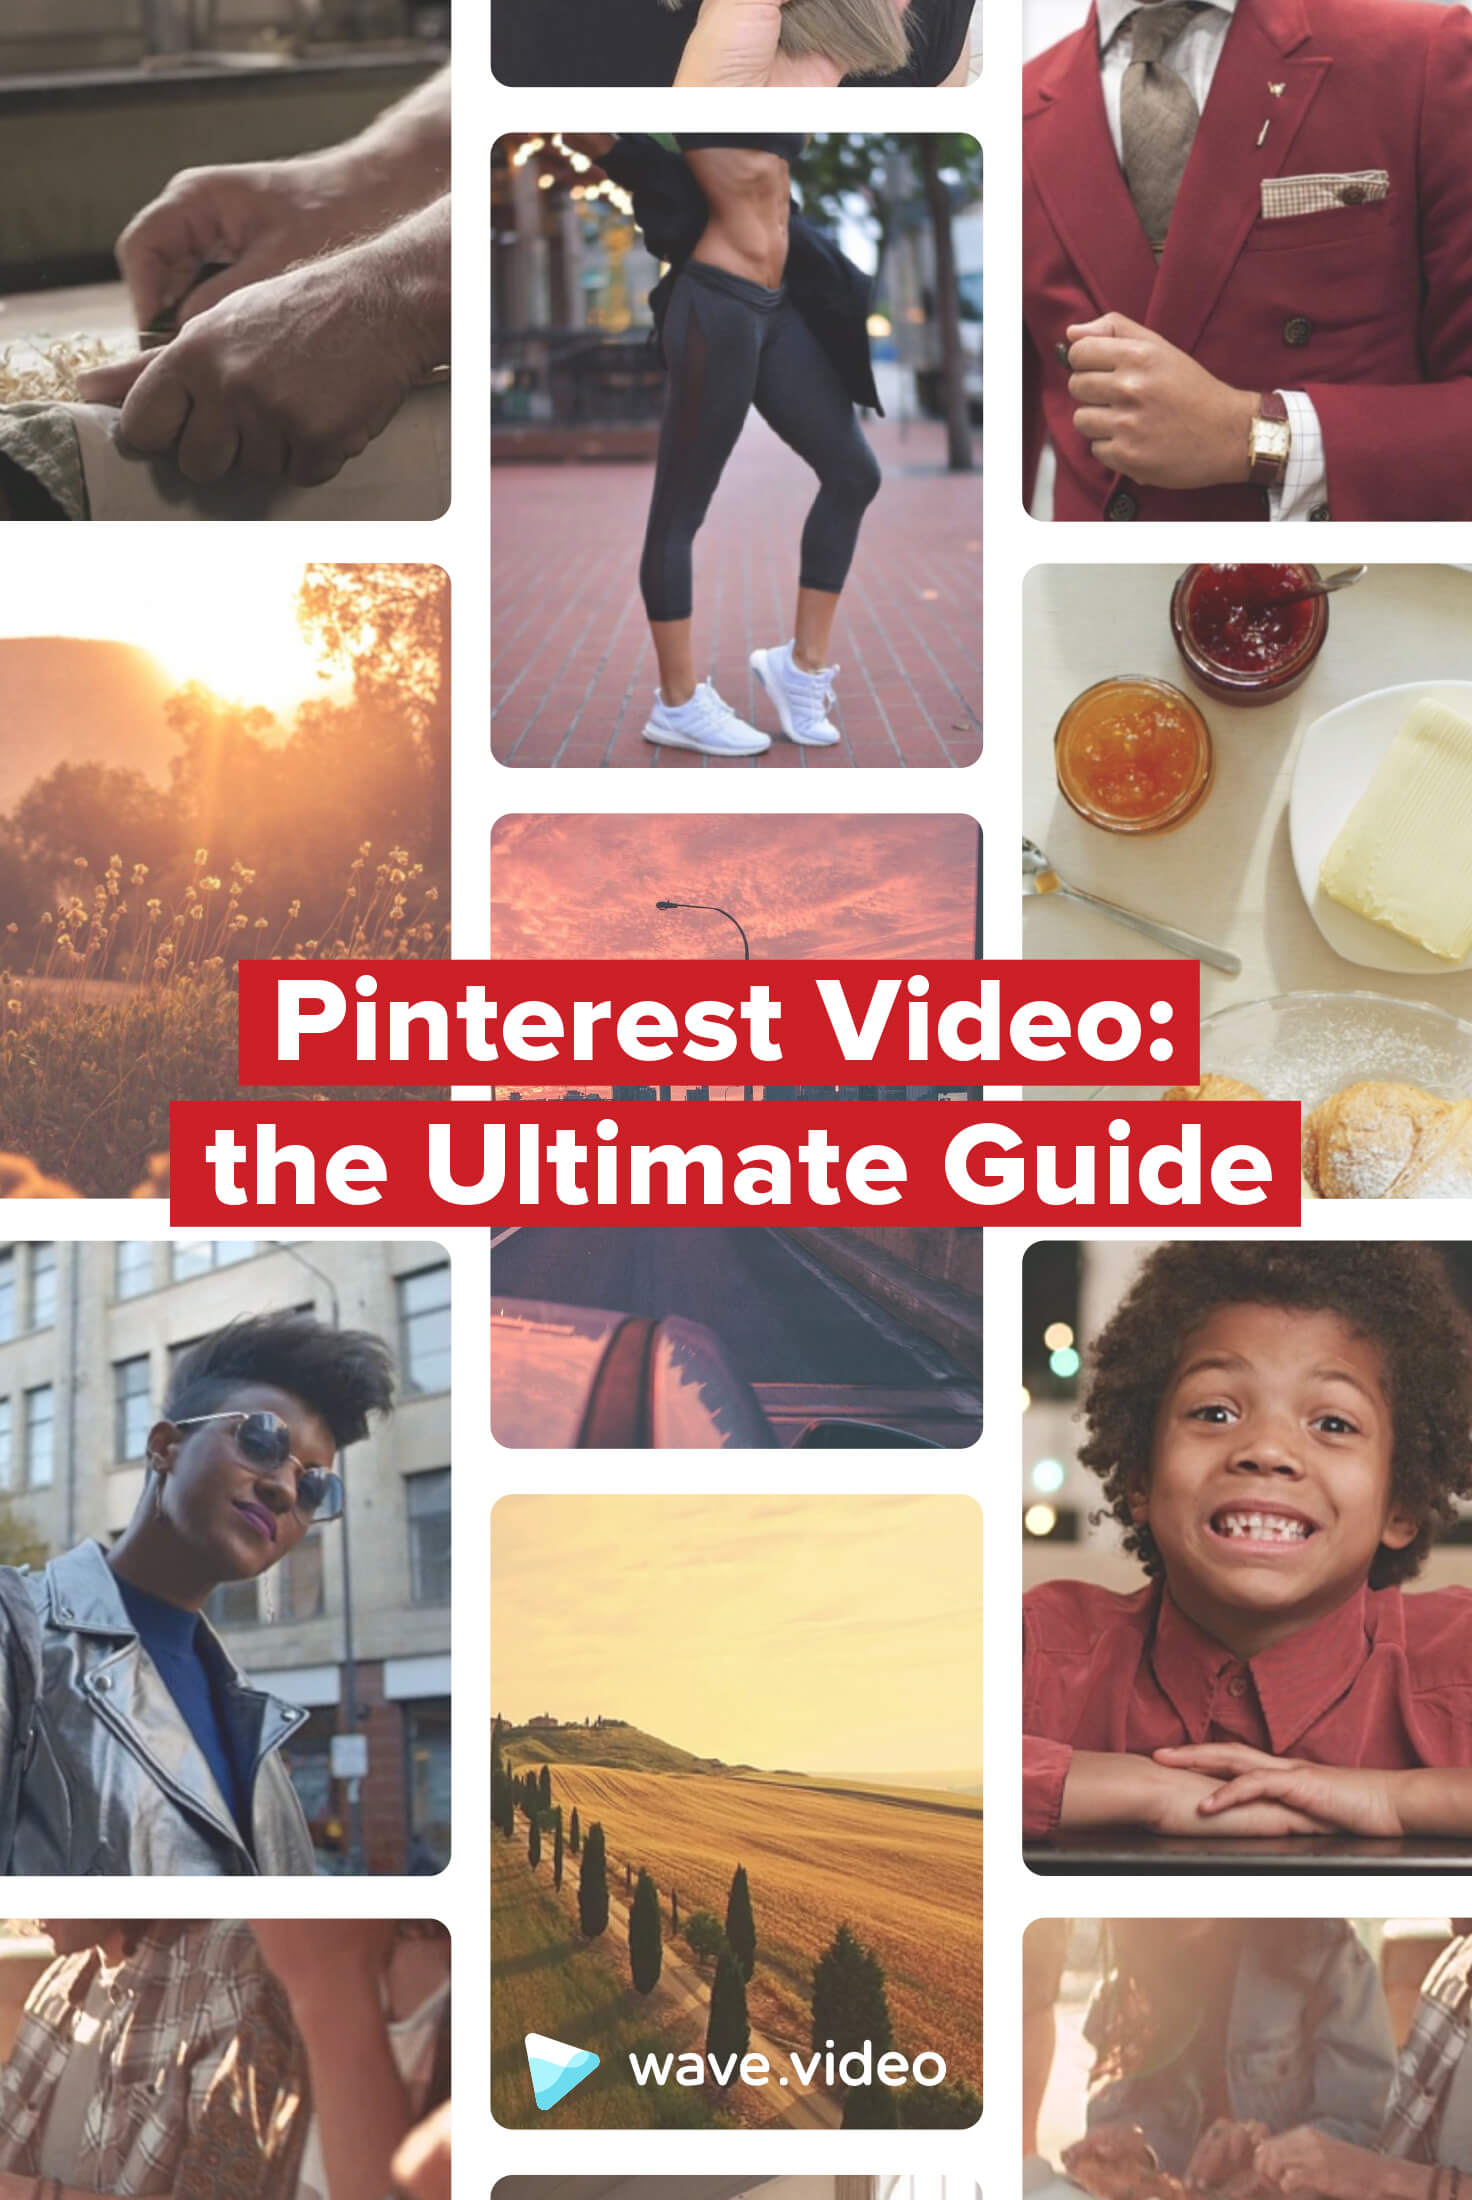 Pinterest Video: the Ultimate Guide